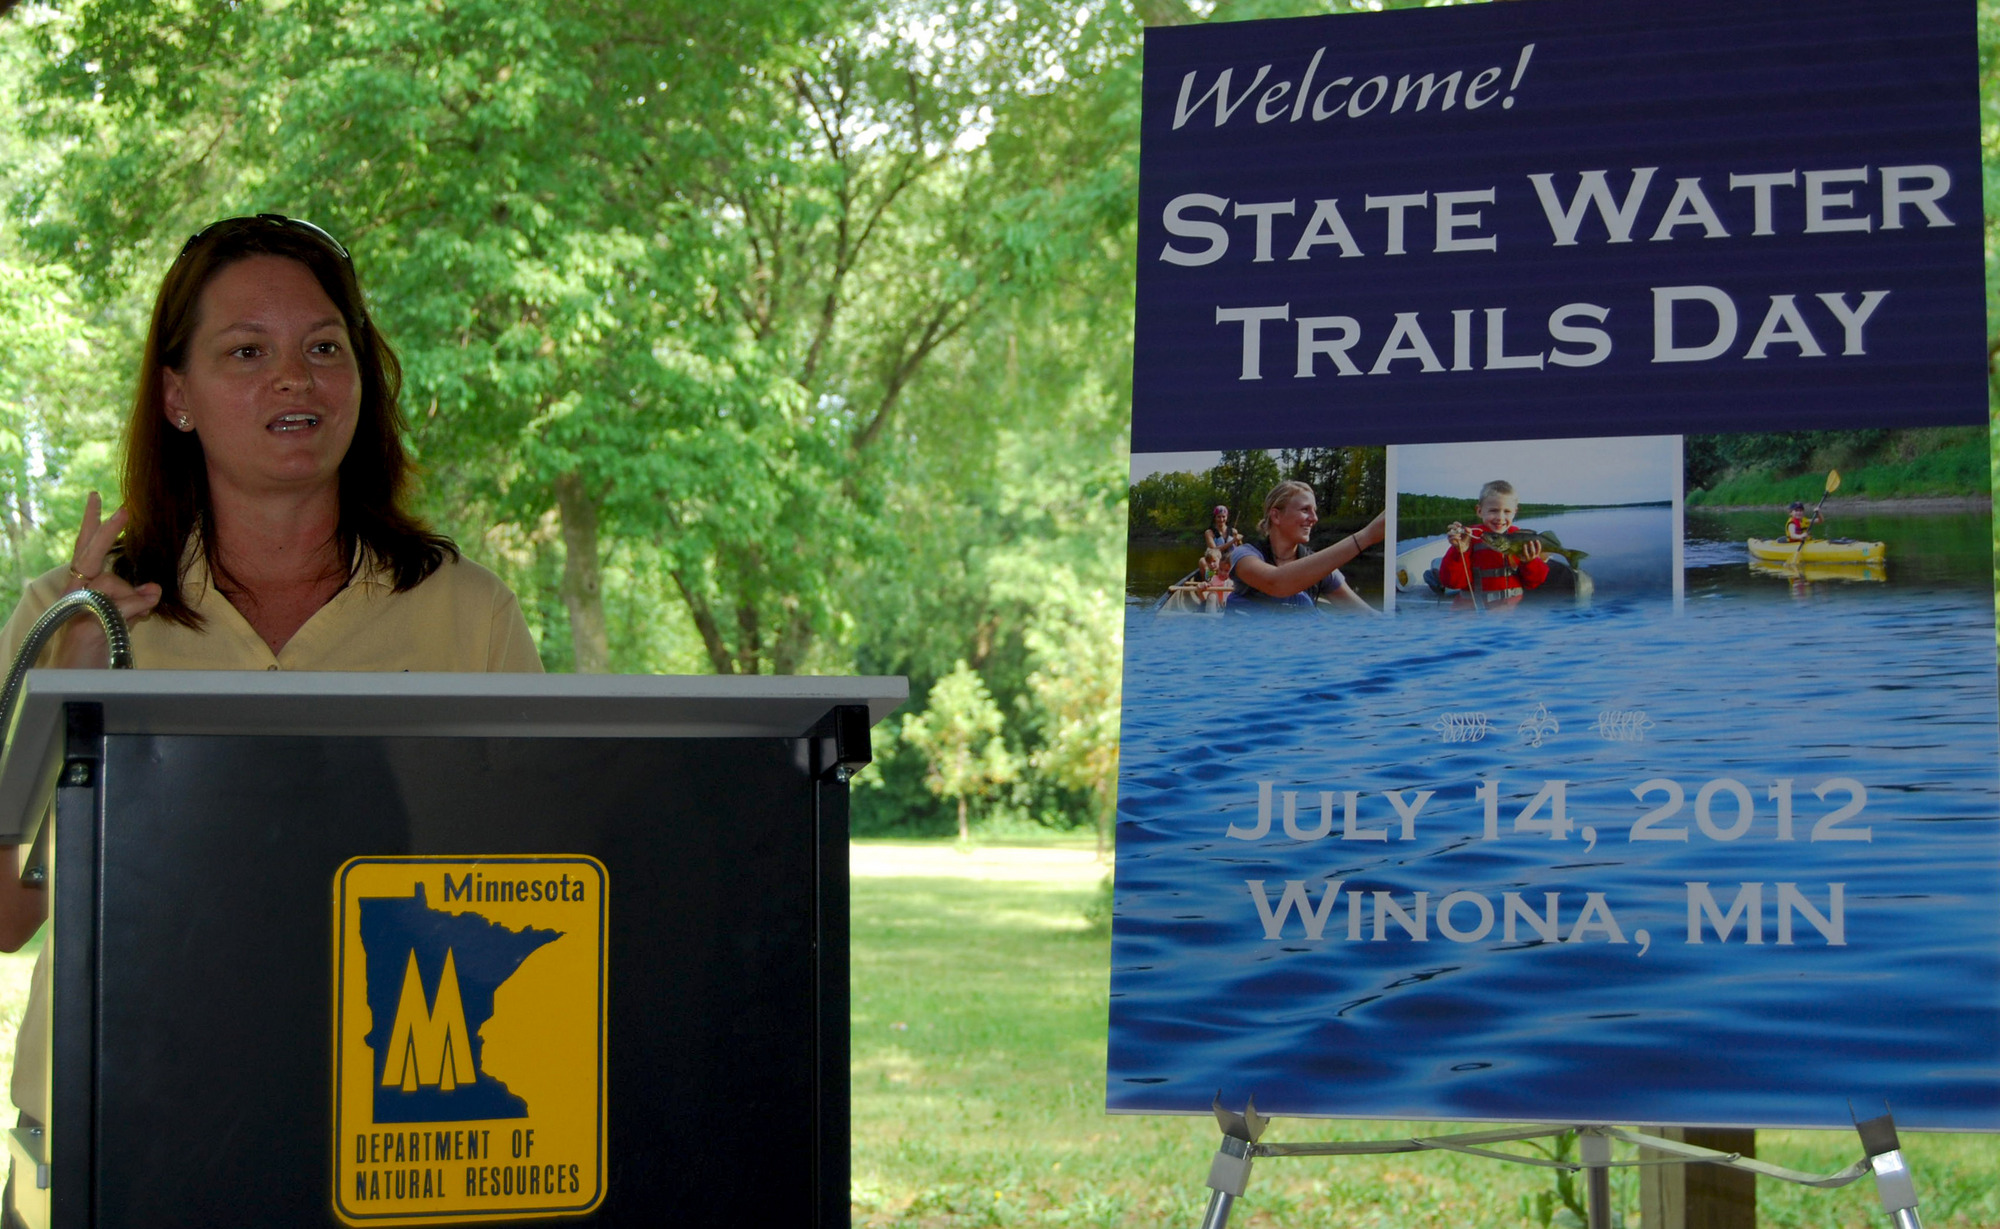 Erika Rivers welcoming the crowd at the 2012 State Water Trails Day in Winona